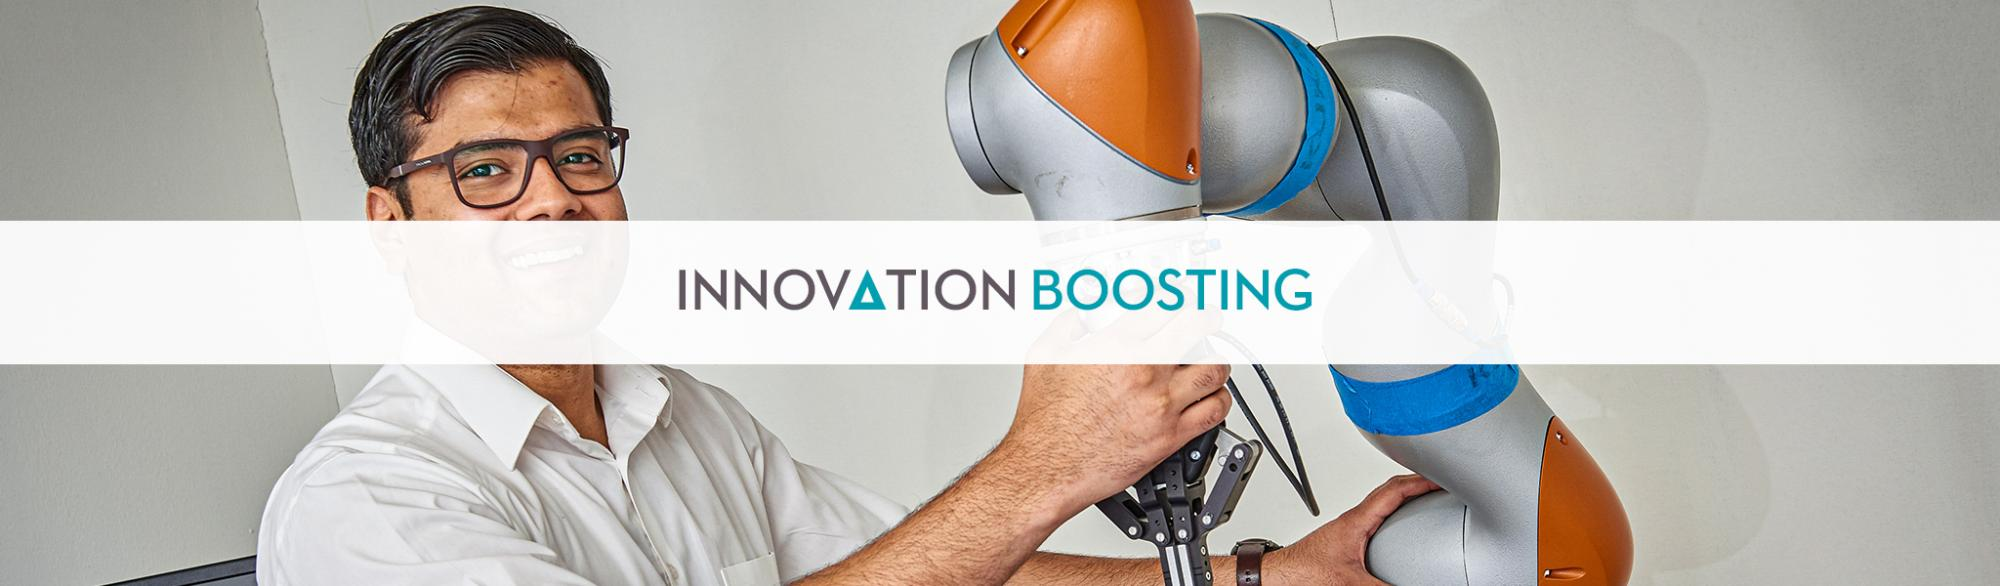 Innovation Boosting Banner